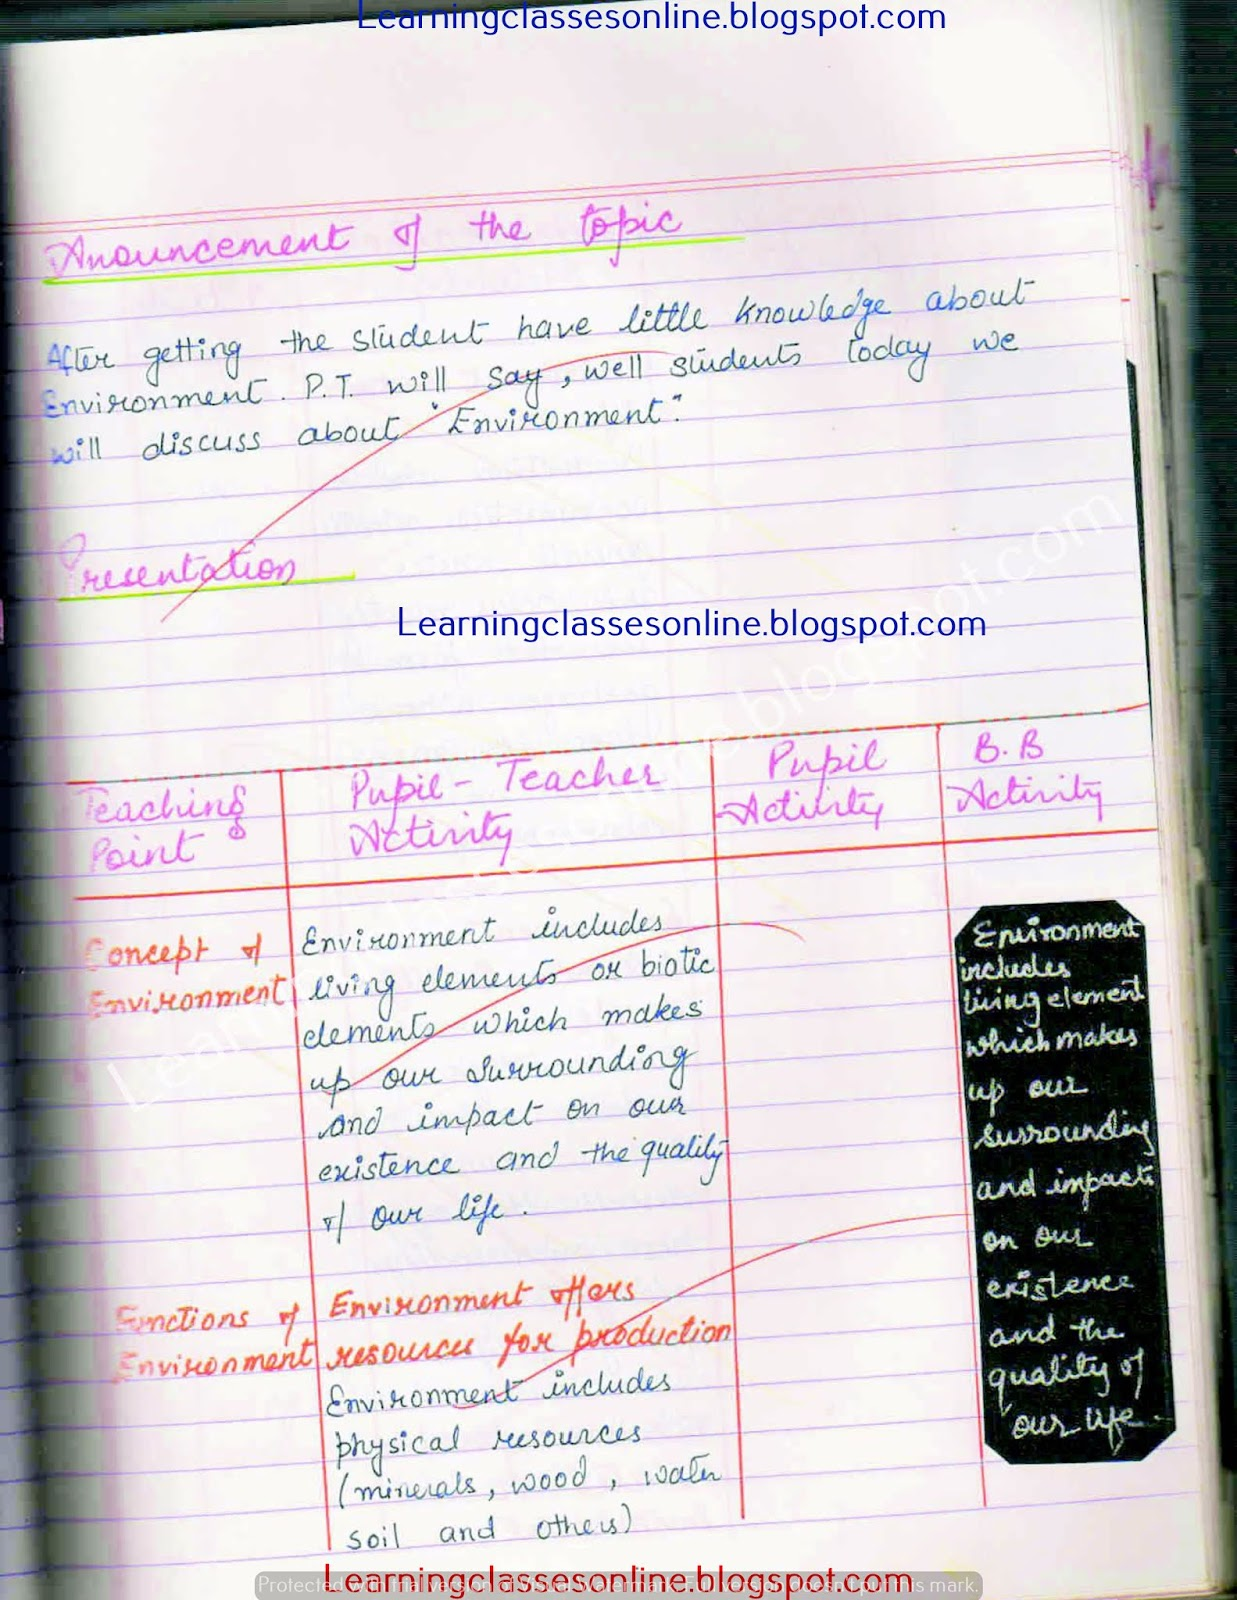 class and grade 9 10 11 12 economics subject lesson plan in English free download